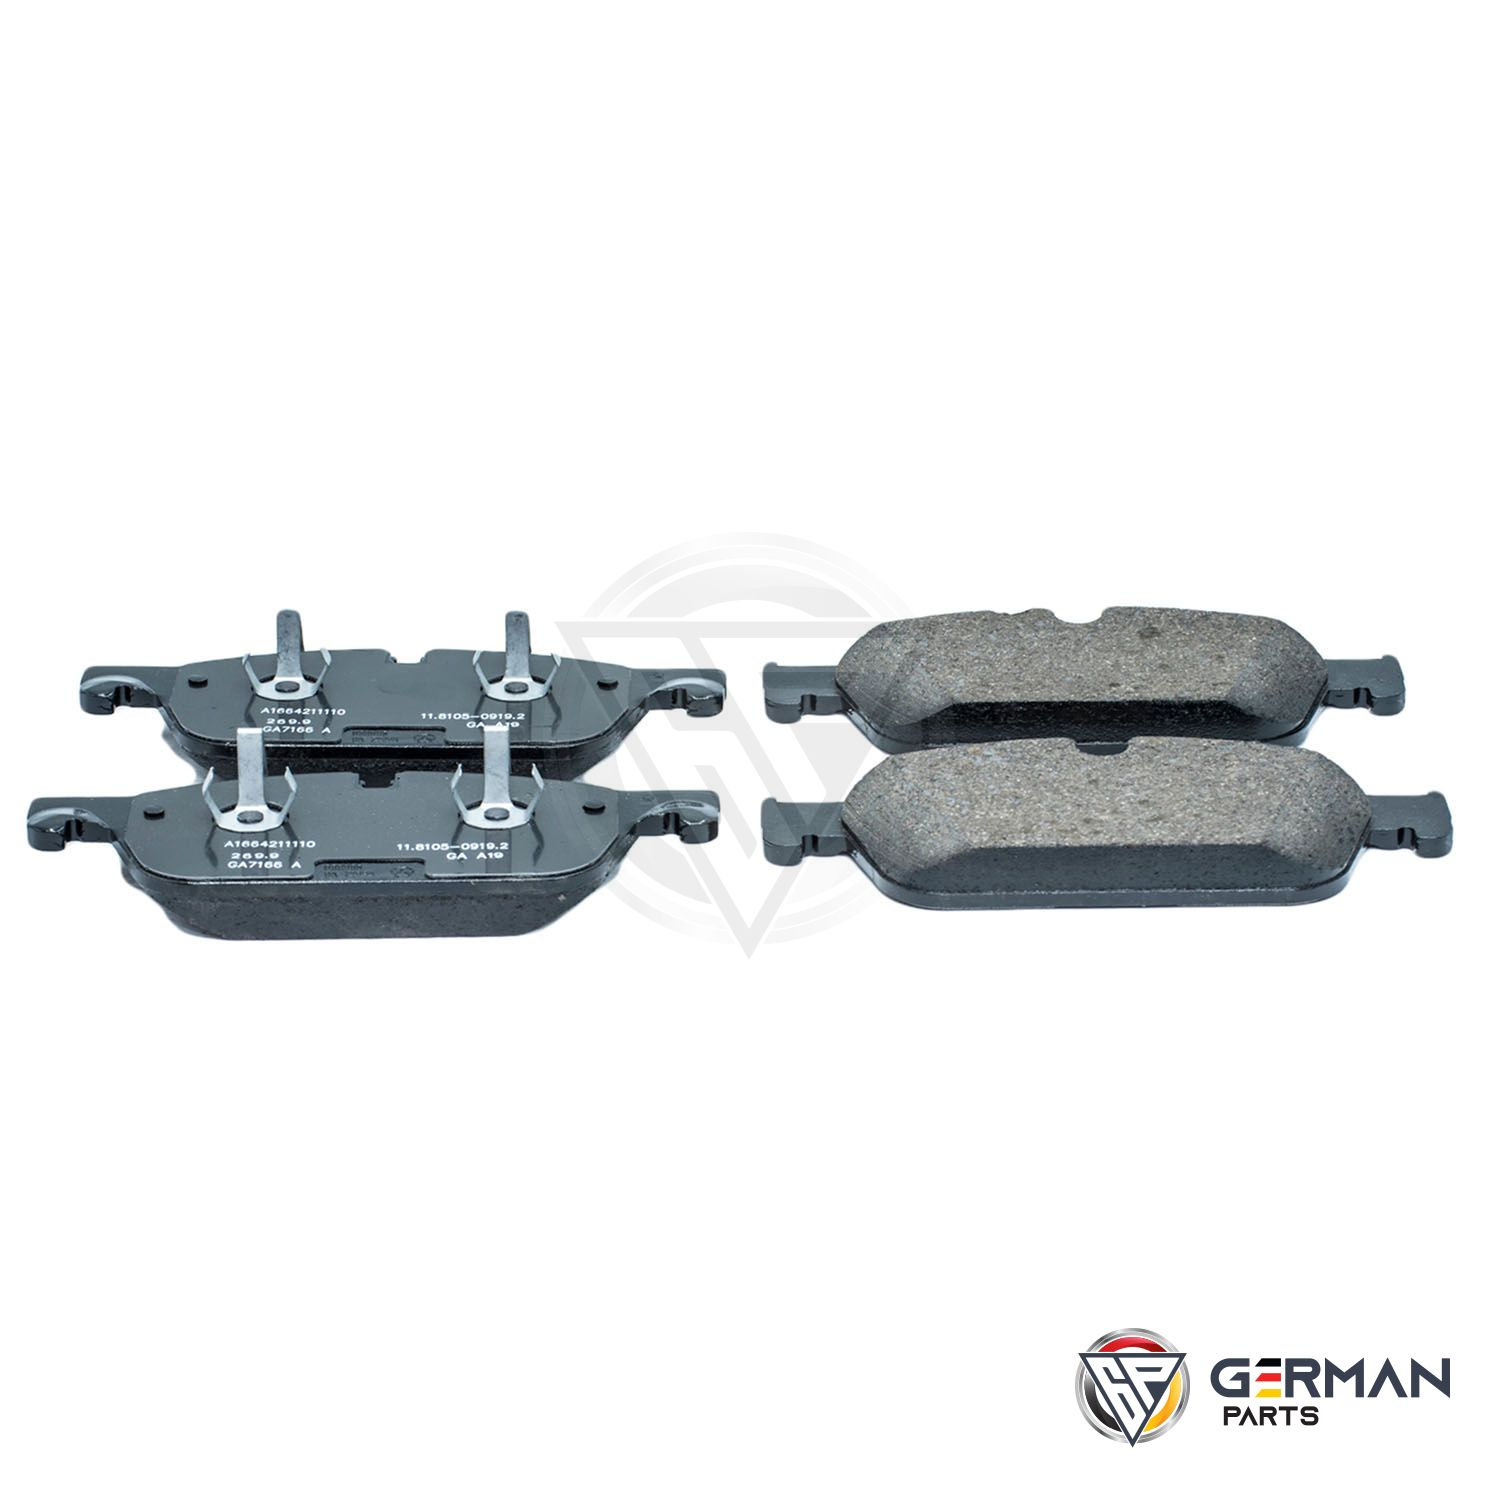 Buy Mercedes Benz Front Brake Pad Set 0074207920 - German Parts